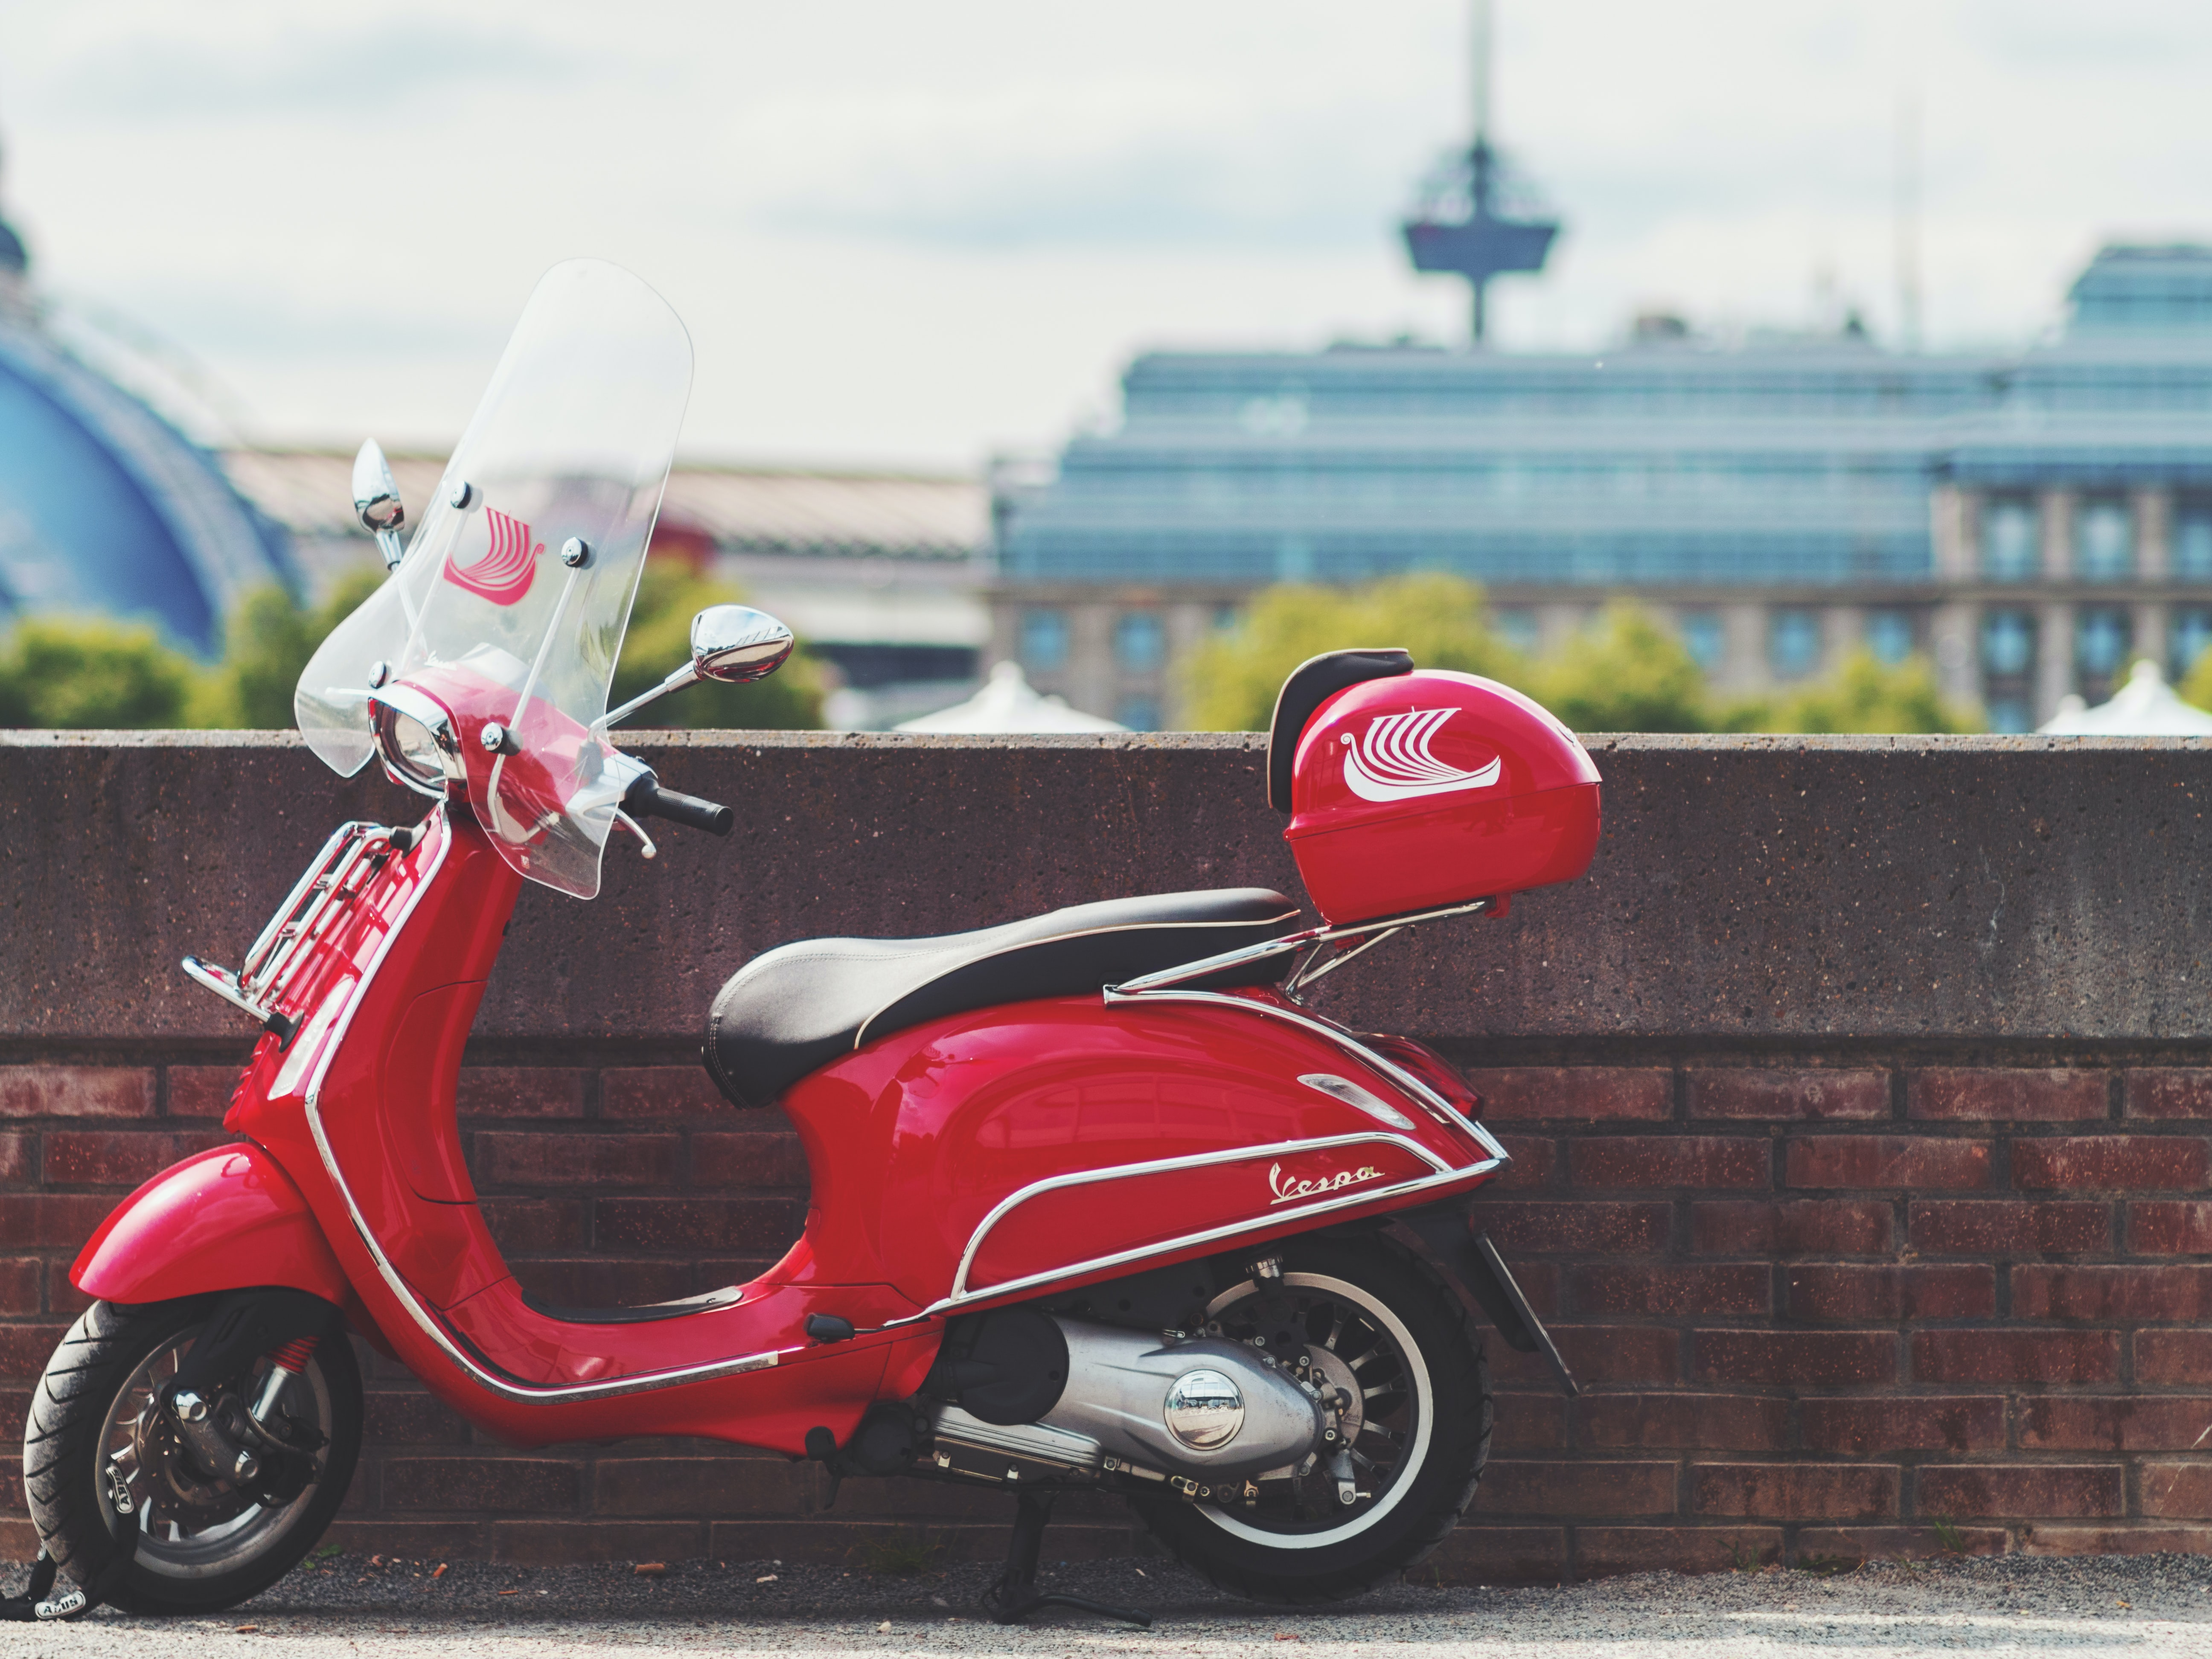 Red moped parked on a bridge overpass in the city